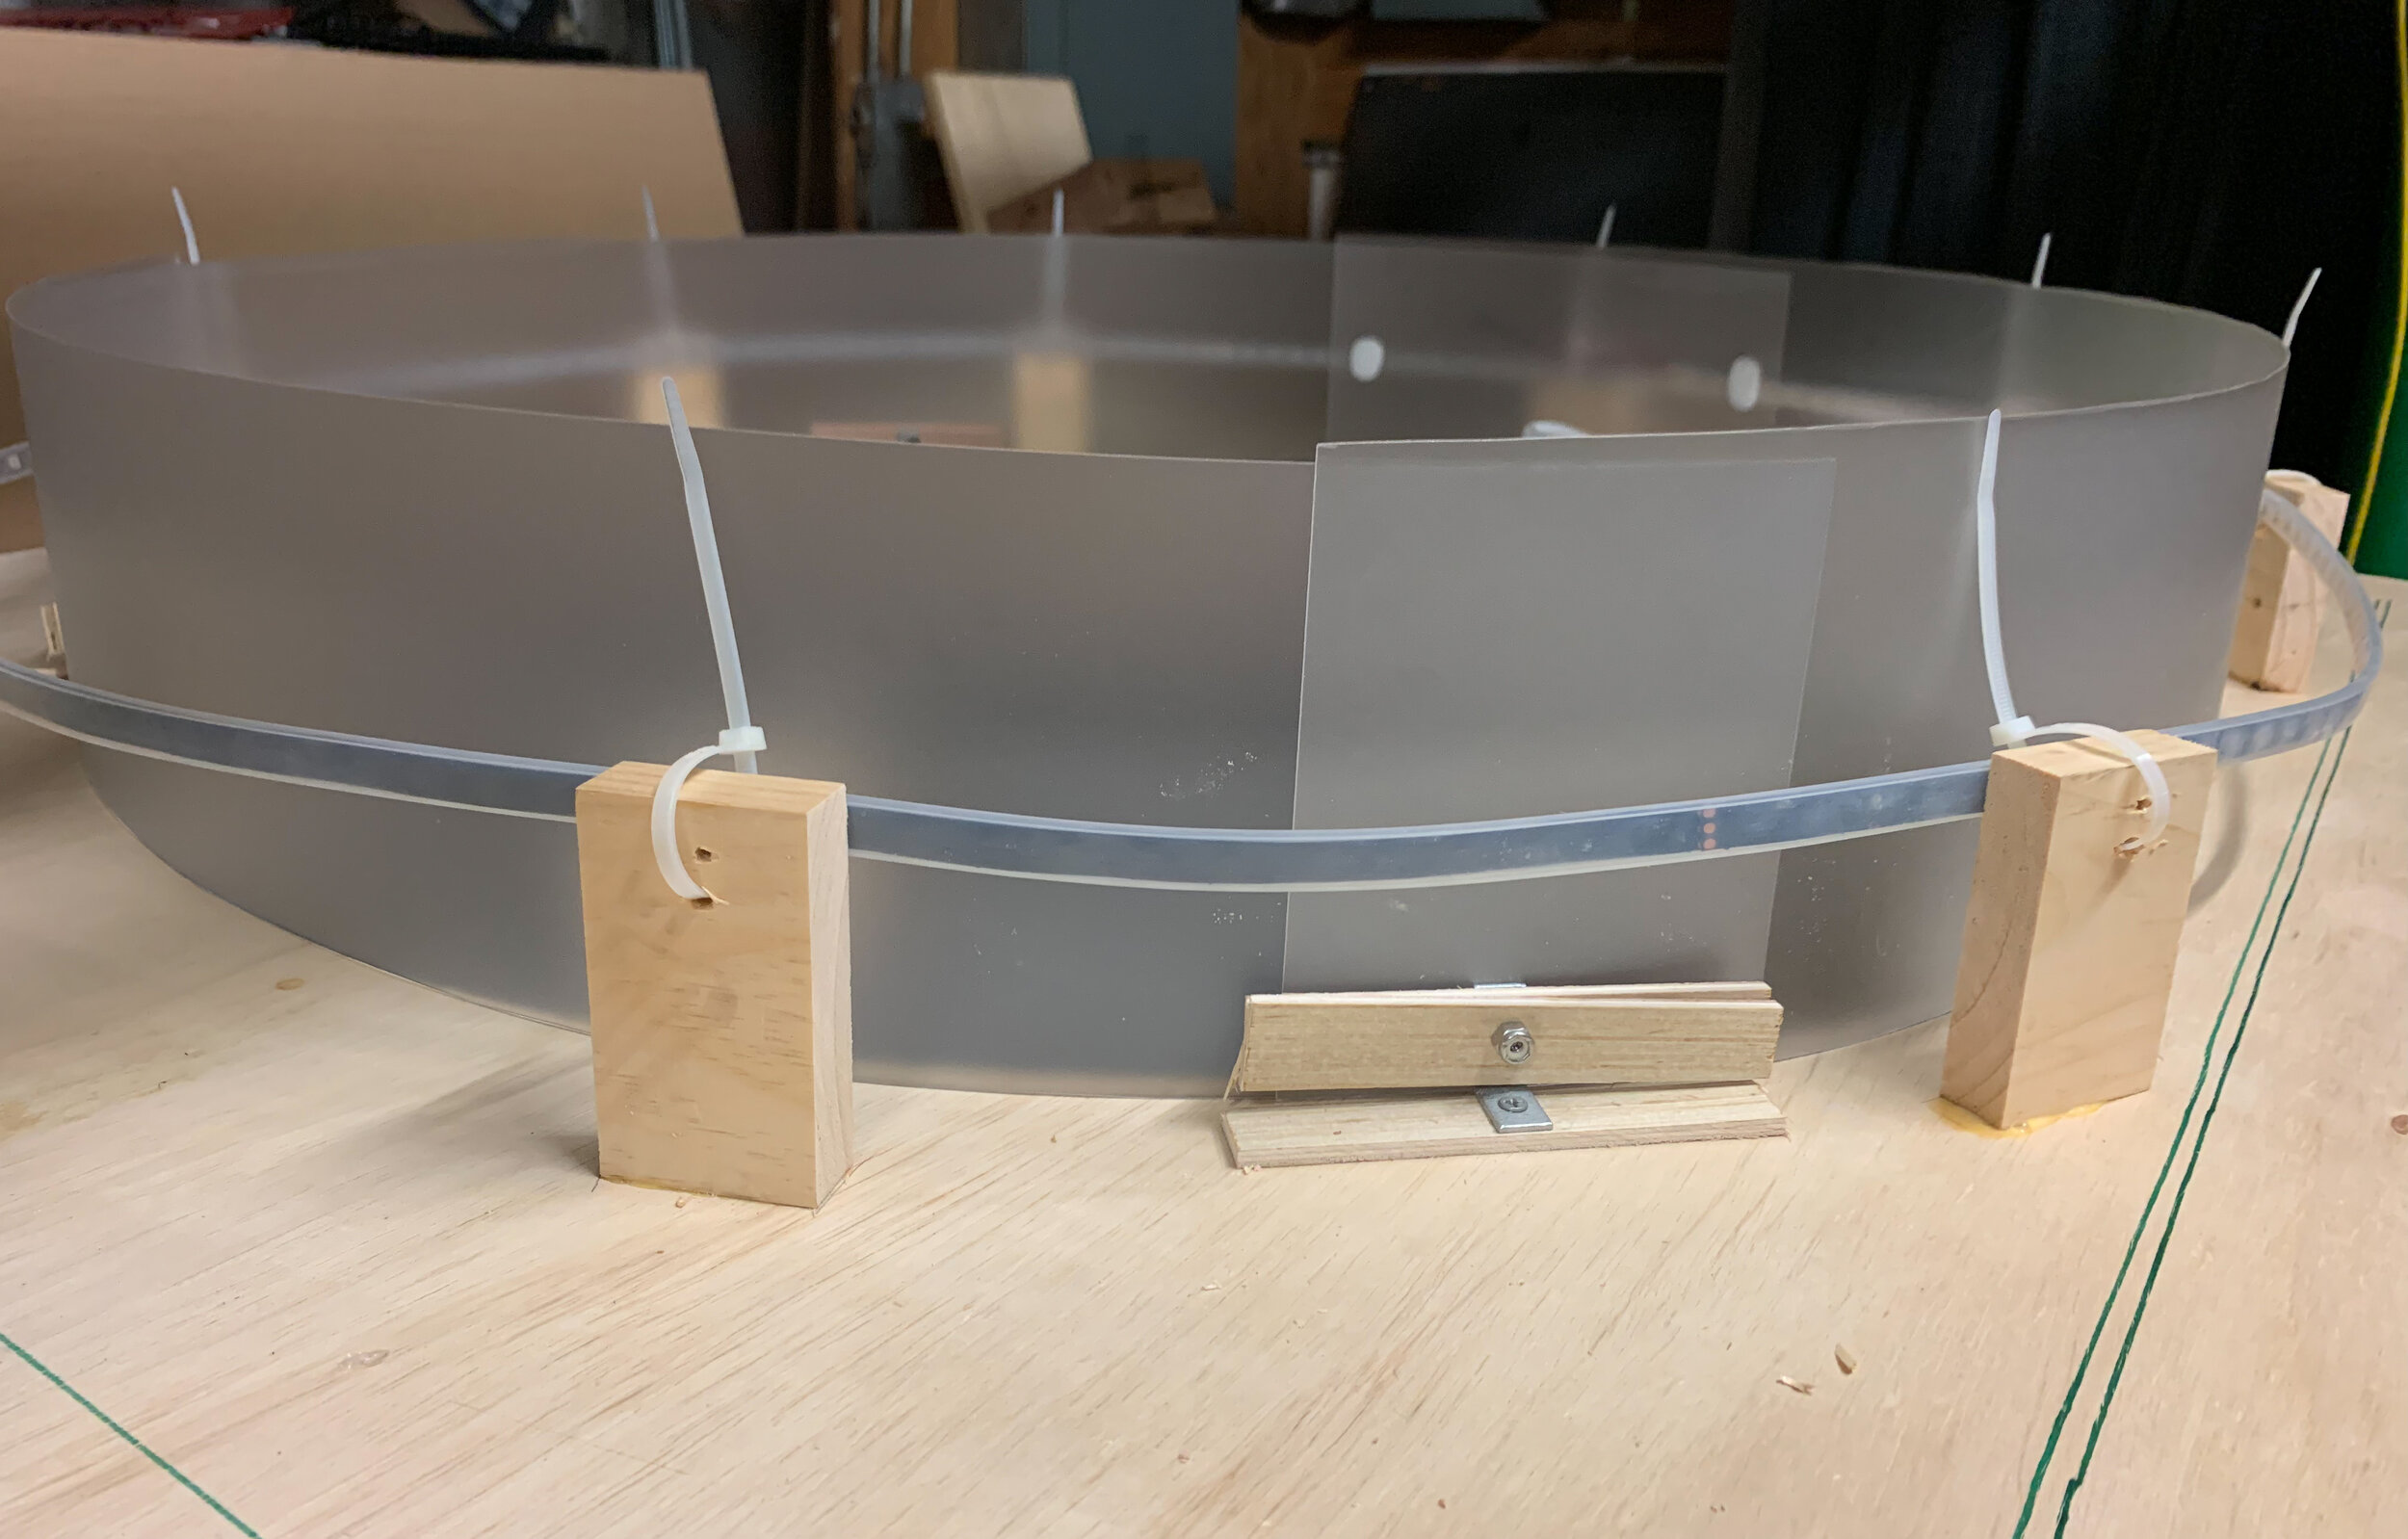 Building a plastic rim to diffuse light